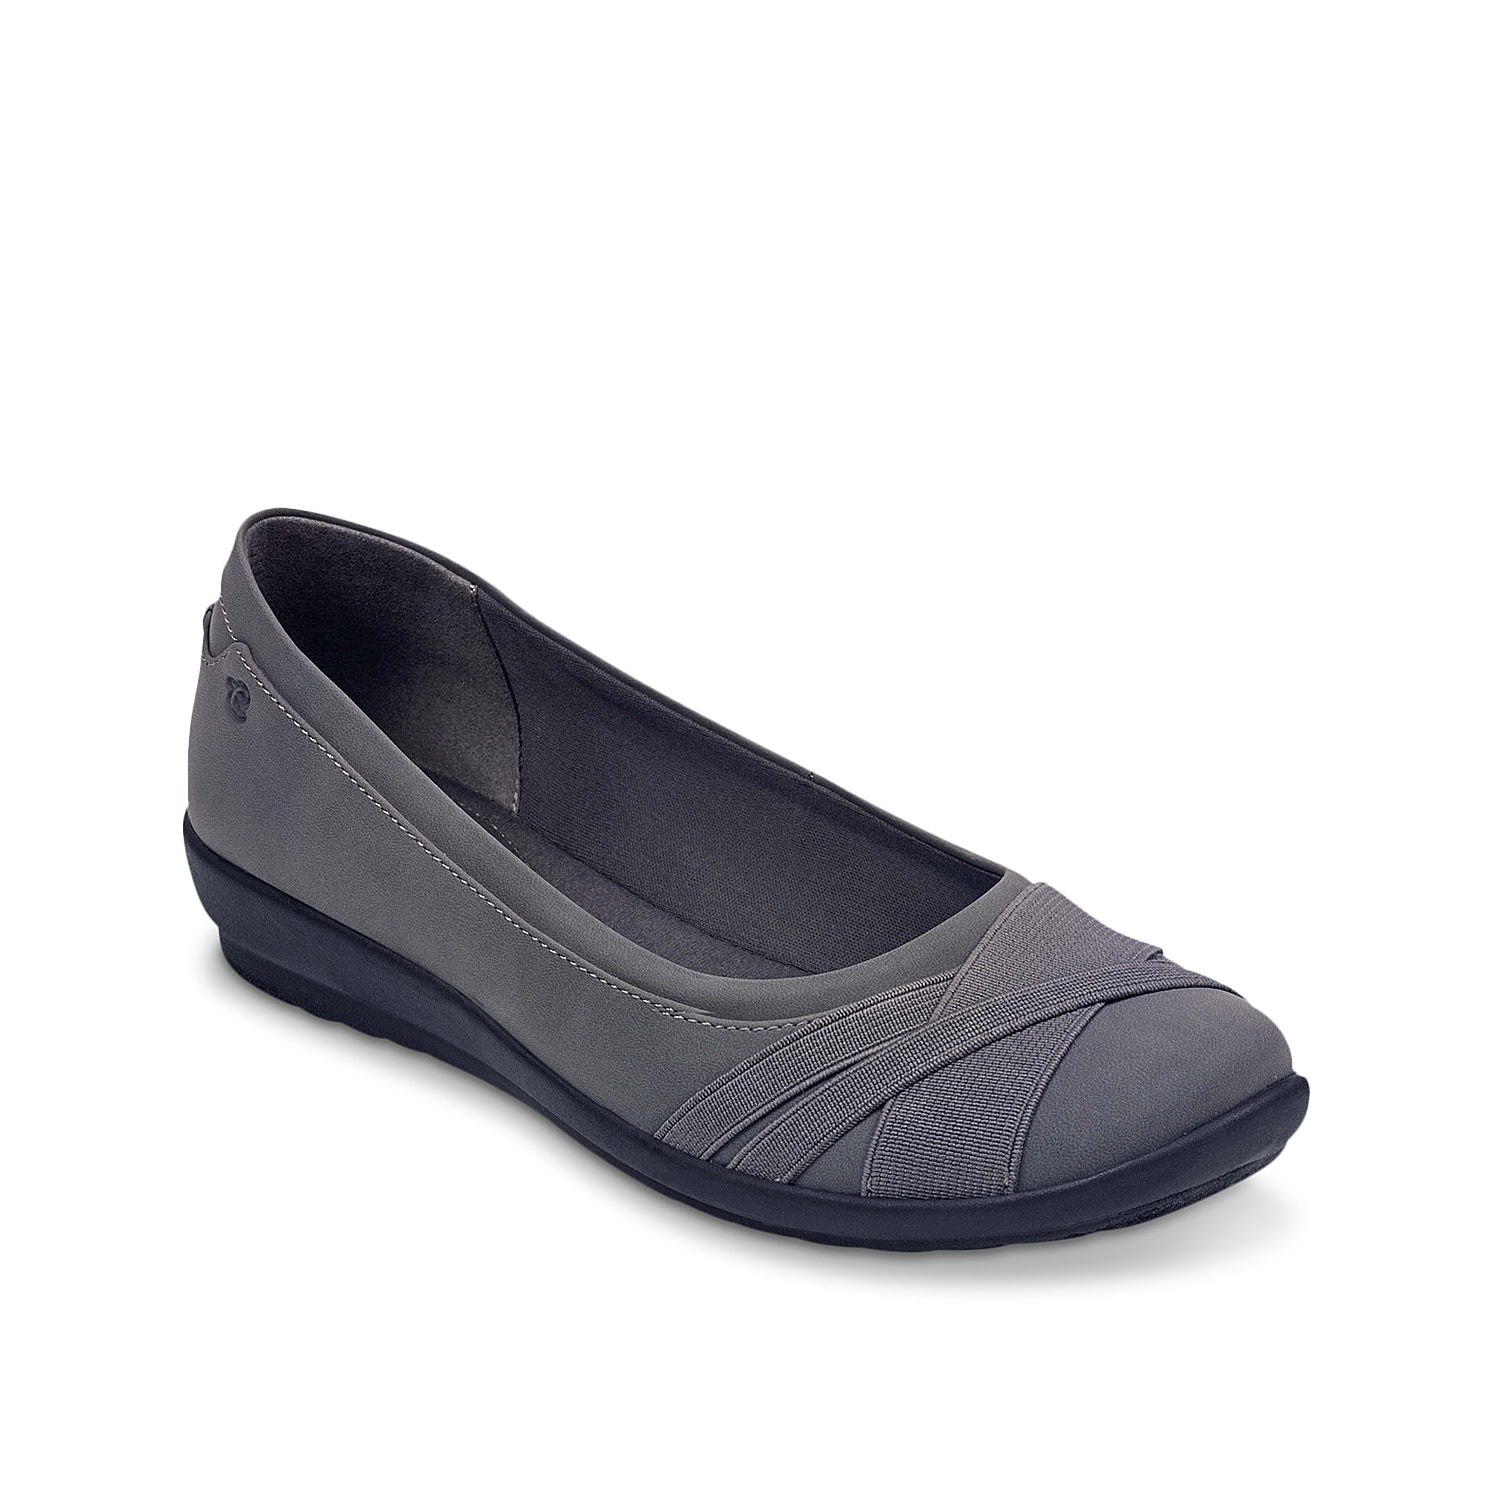 Flatter your work or weekend wardrobe with the Acasia ballet flats from Easy Spirit. These slip-ons feature elastic detail at the toe and a flexible sole for superior comfort.